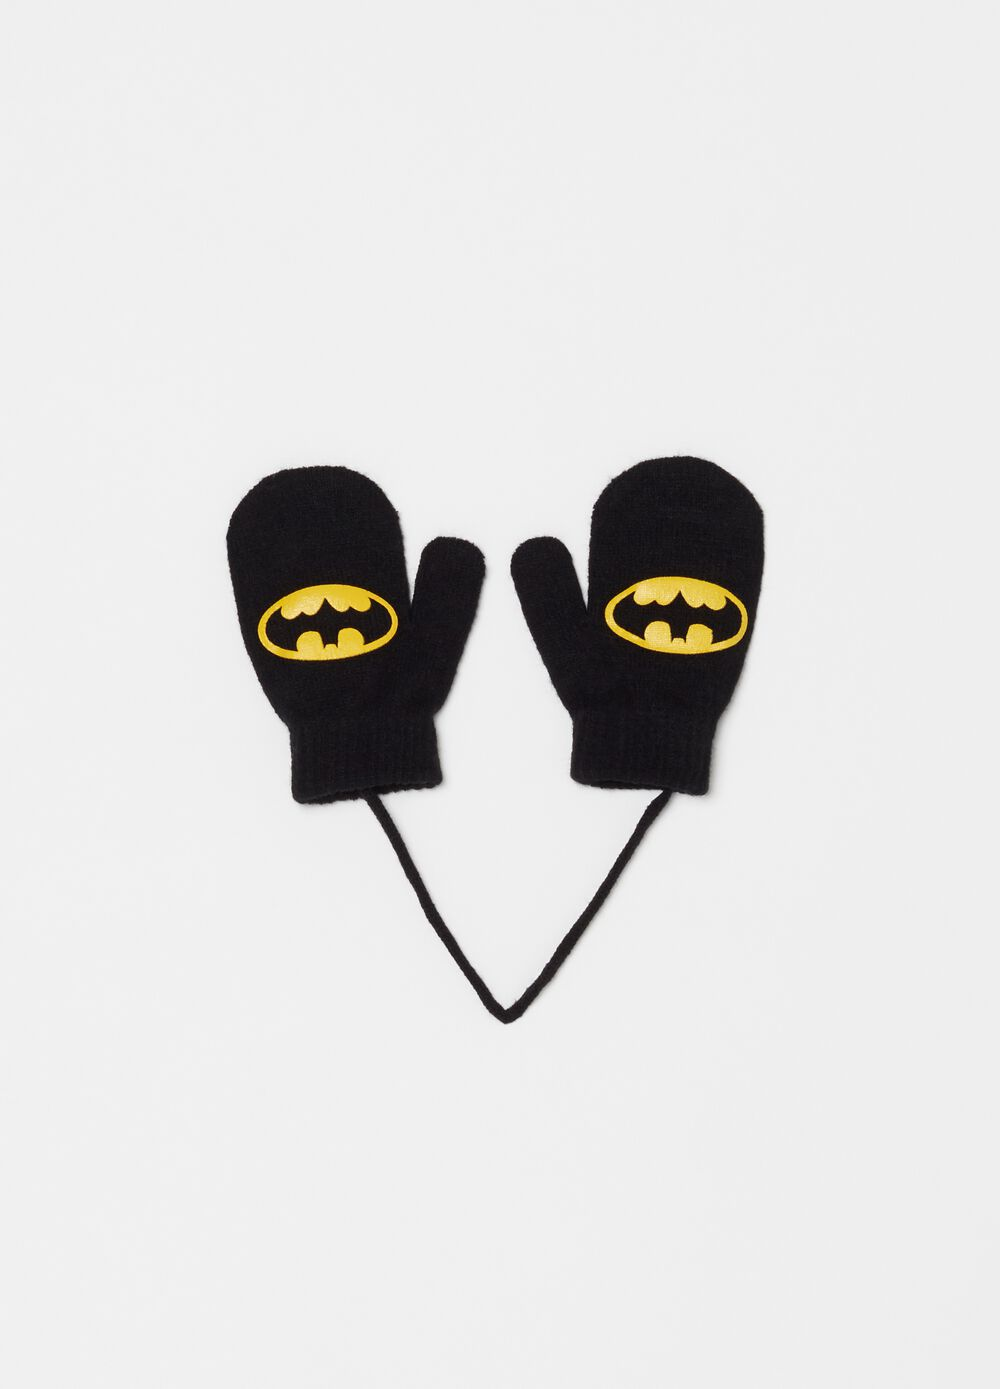 Knitted mittens with Warner Bros Batman print